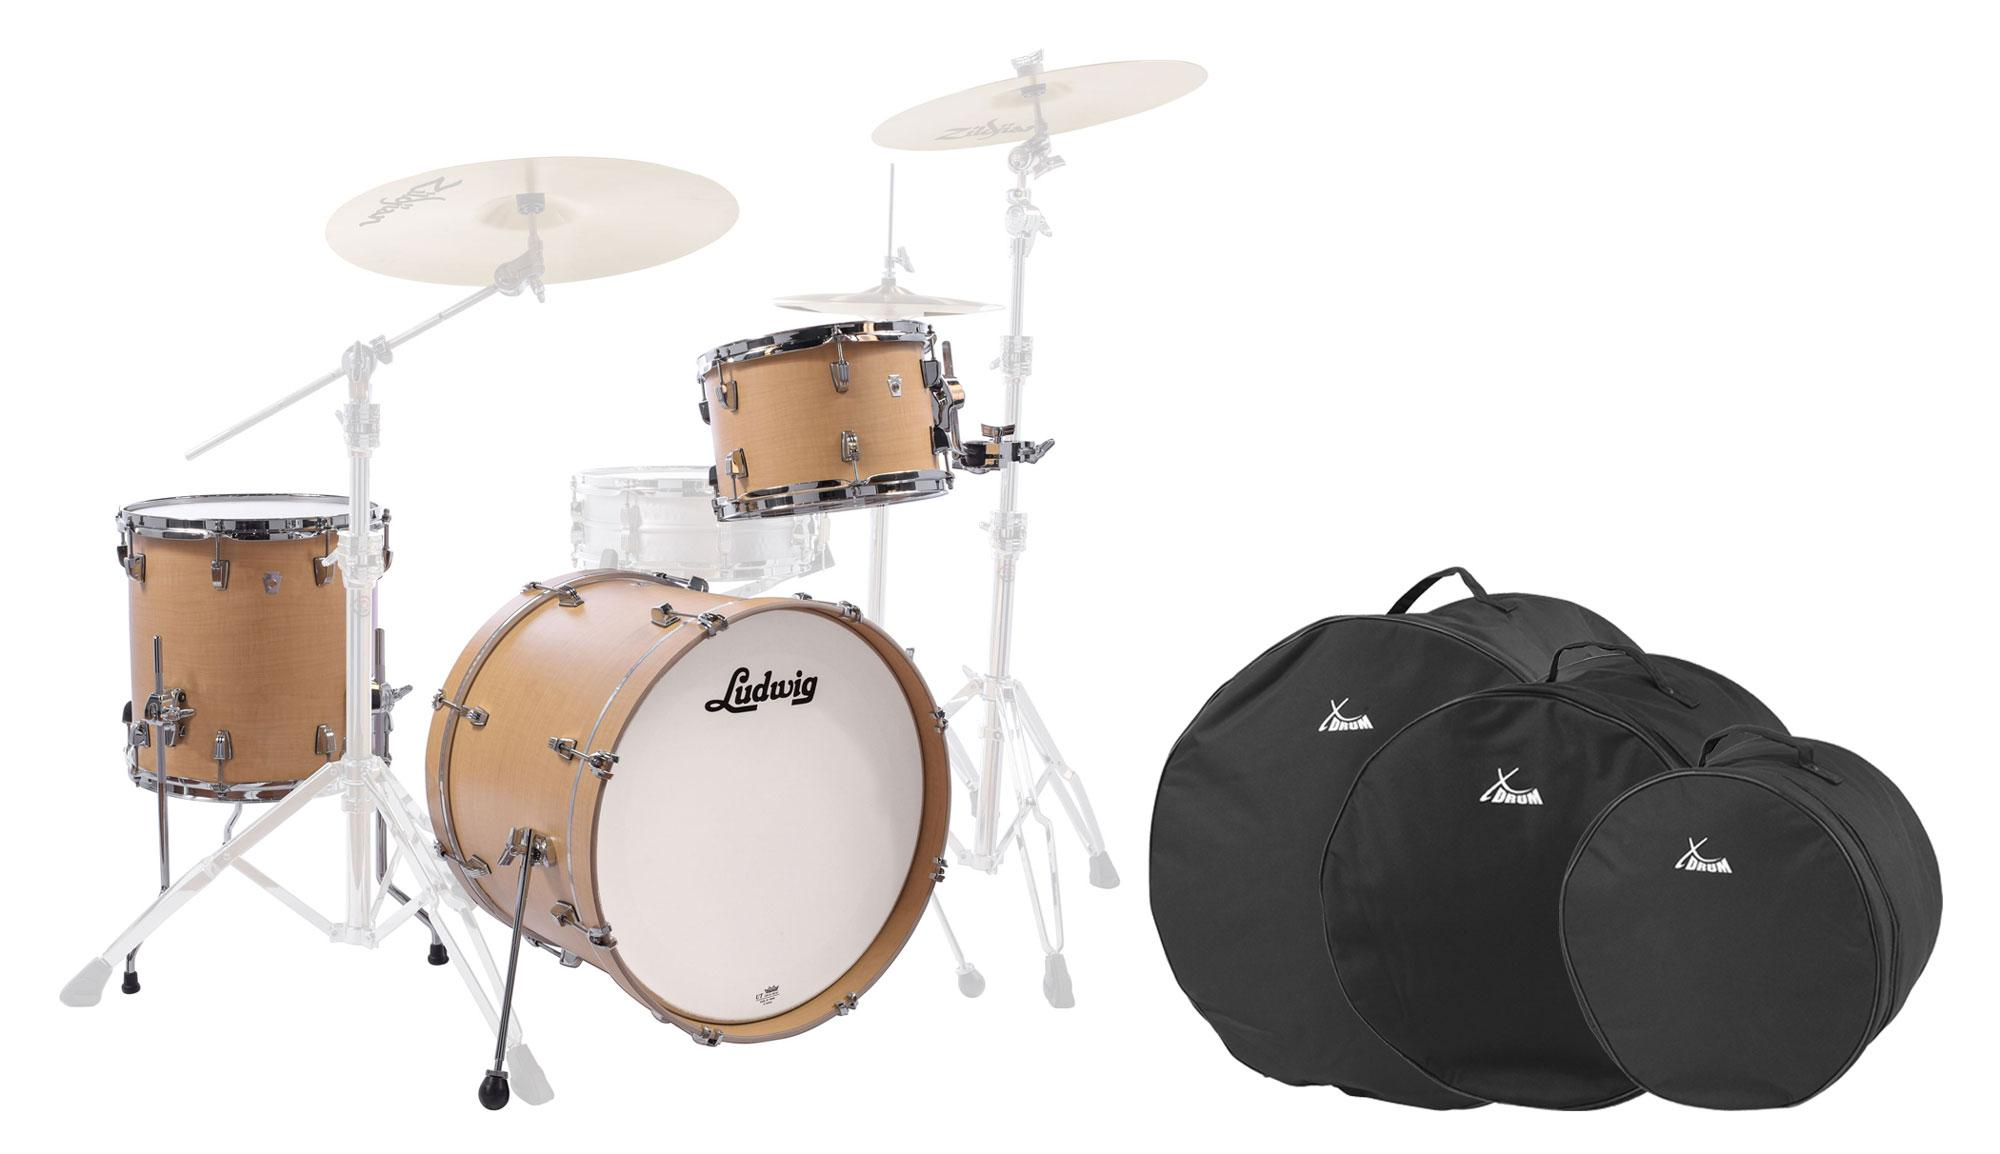 Ludwig L26223TX3Q NeuSonic Shellset Sugar Maple Set inkl. Drum Bags